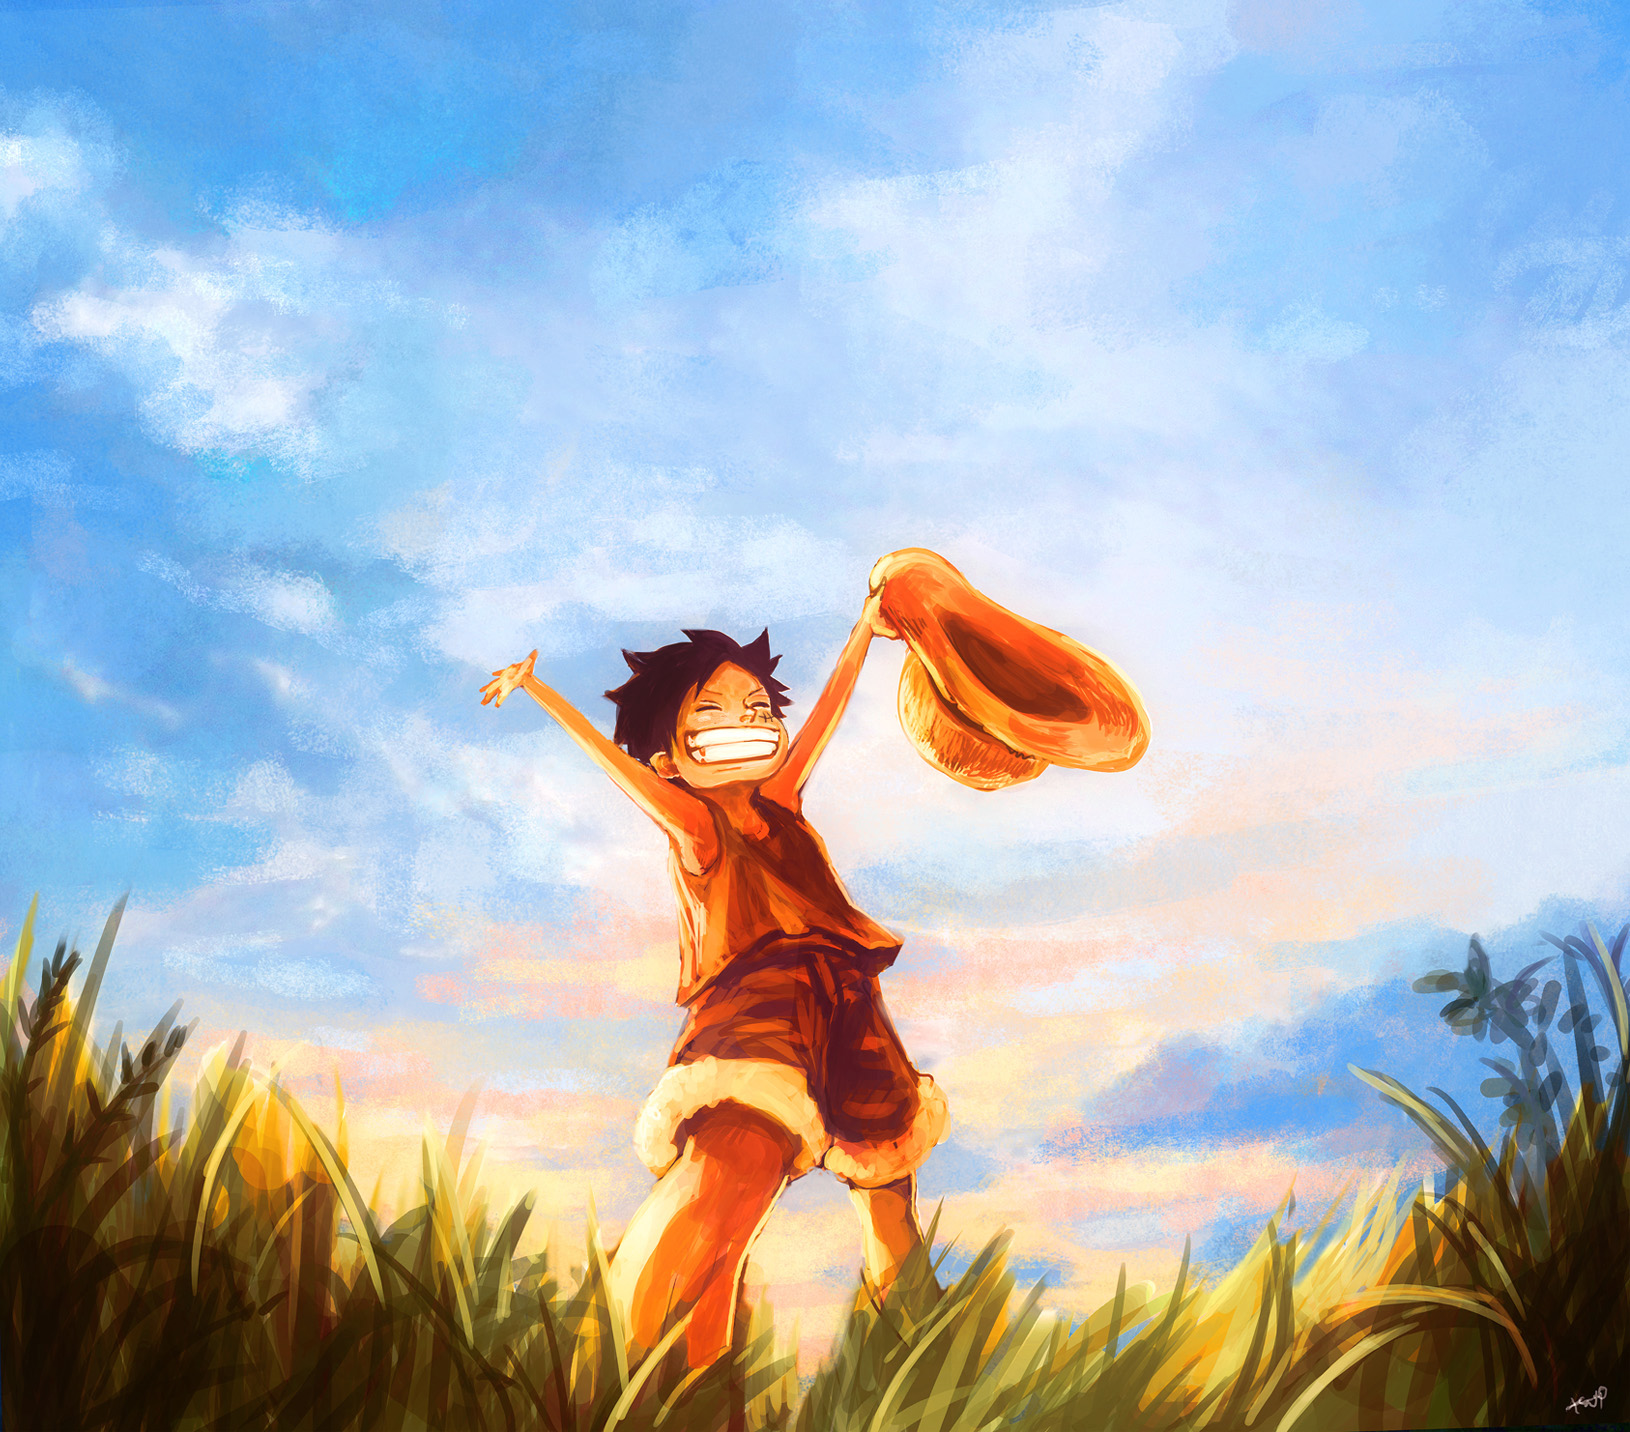 Awesome Wallpaper! Luffy's Childhood : OnePiece